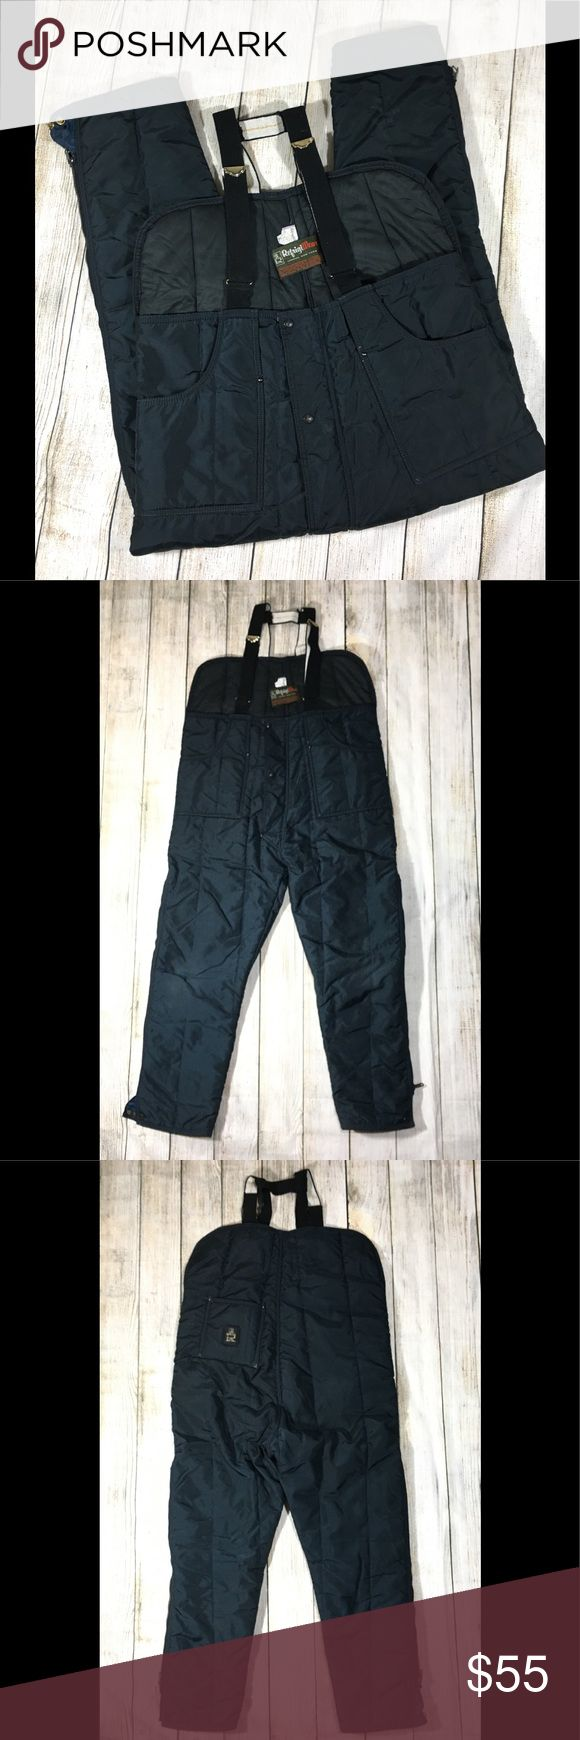 """Refrigiwear Iron Tuff Insulated Bib Overalls 345 Refrigiwear Iron Tuff Mens Large Womens 12 14 VTG  Style No: 345   Navy  Low Bib  Insulated Overalls  USA MADE ALSO fits Women 12 14 -- Some wear on knees, right knee has a small repair -- otherwise in GREAT Vintage Condition! Top width: 21.5"""" Width at base of zipper: 25"""" Rise: 17.75"""" Inseam: 29.5"""" Refrigiwear Jackets & Coats"""